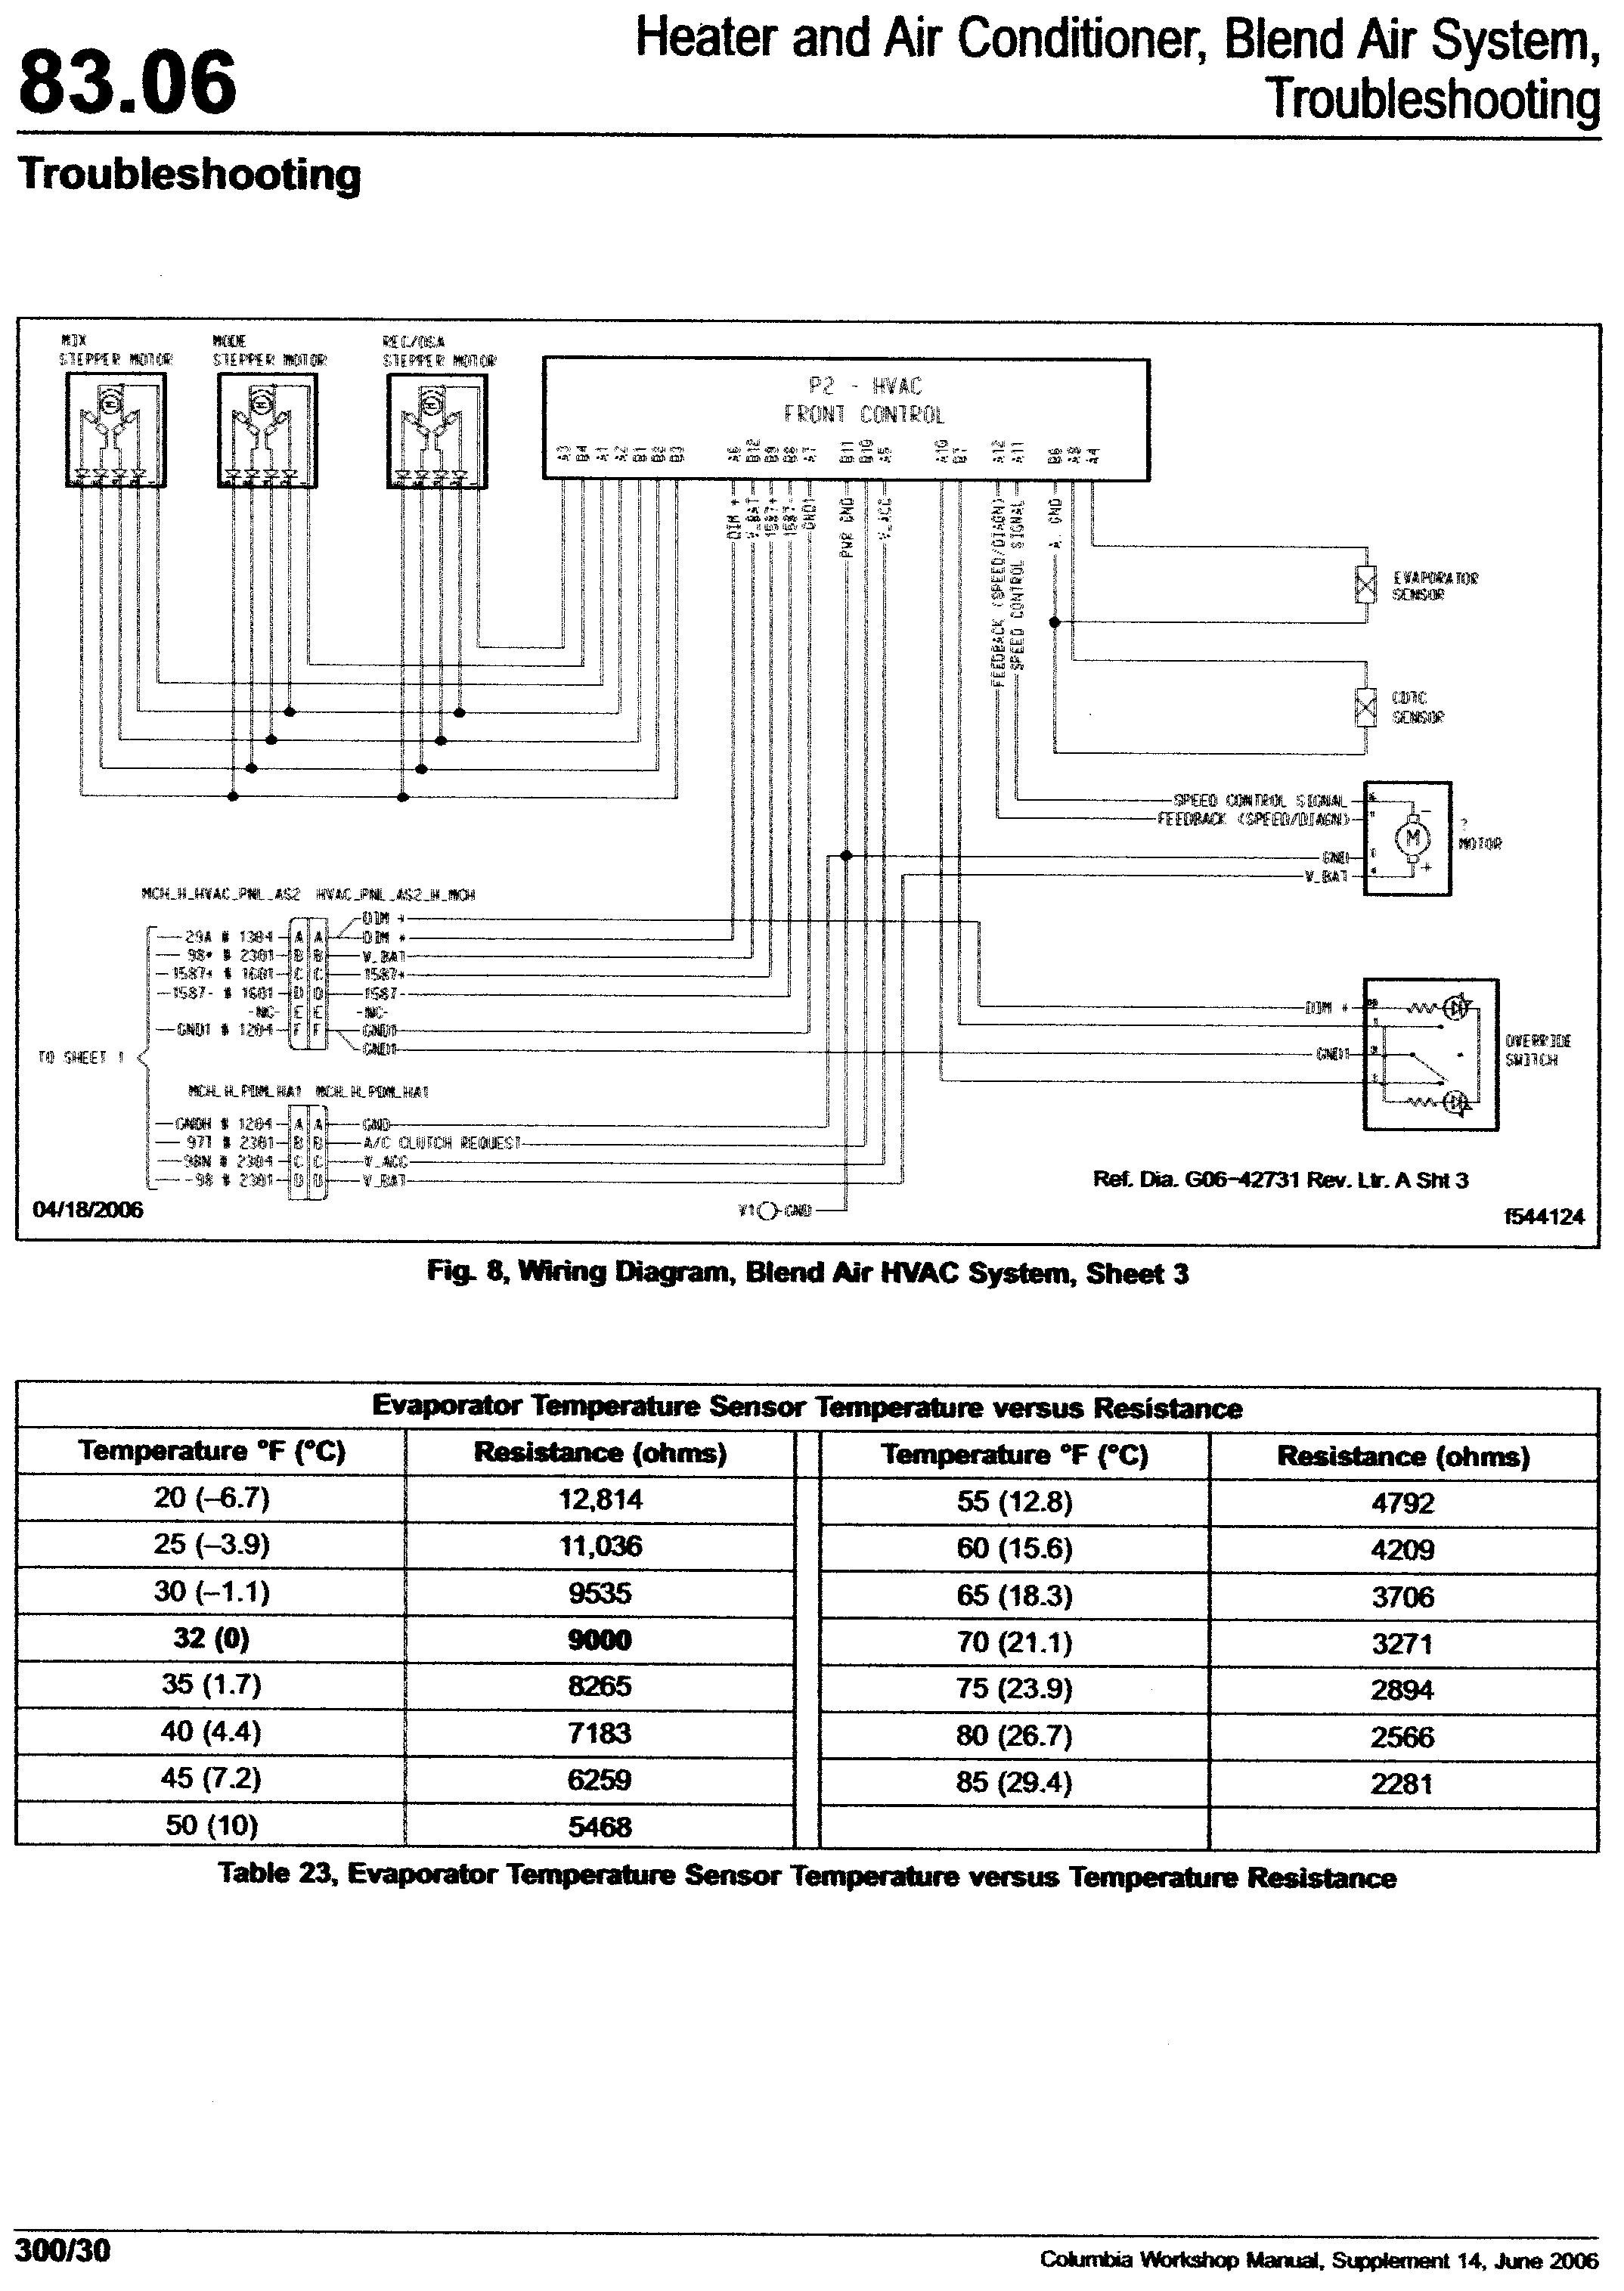 freightliner m2 wiring diagram Download-Freightliner M2 Wiring Diagram Best Freightliner Wiring Diagram Manual Best 2006 Freightliner 20-j